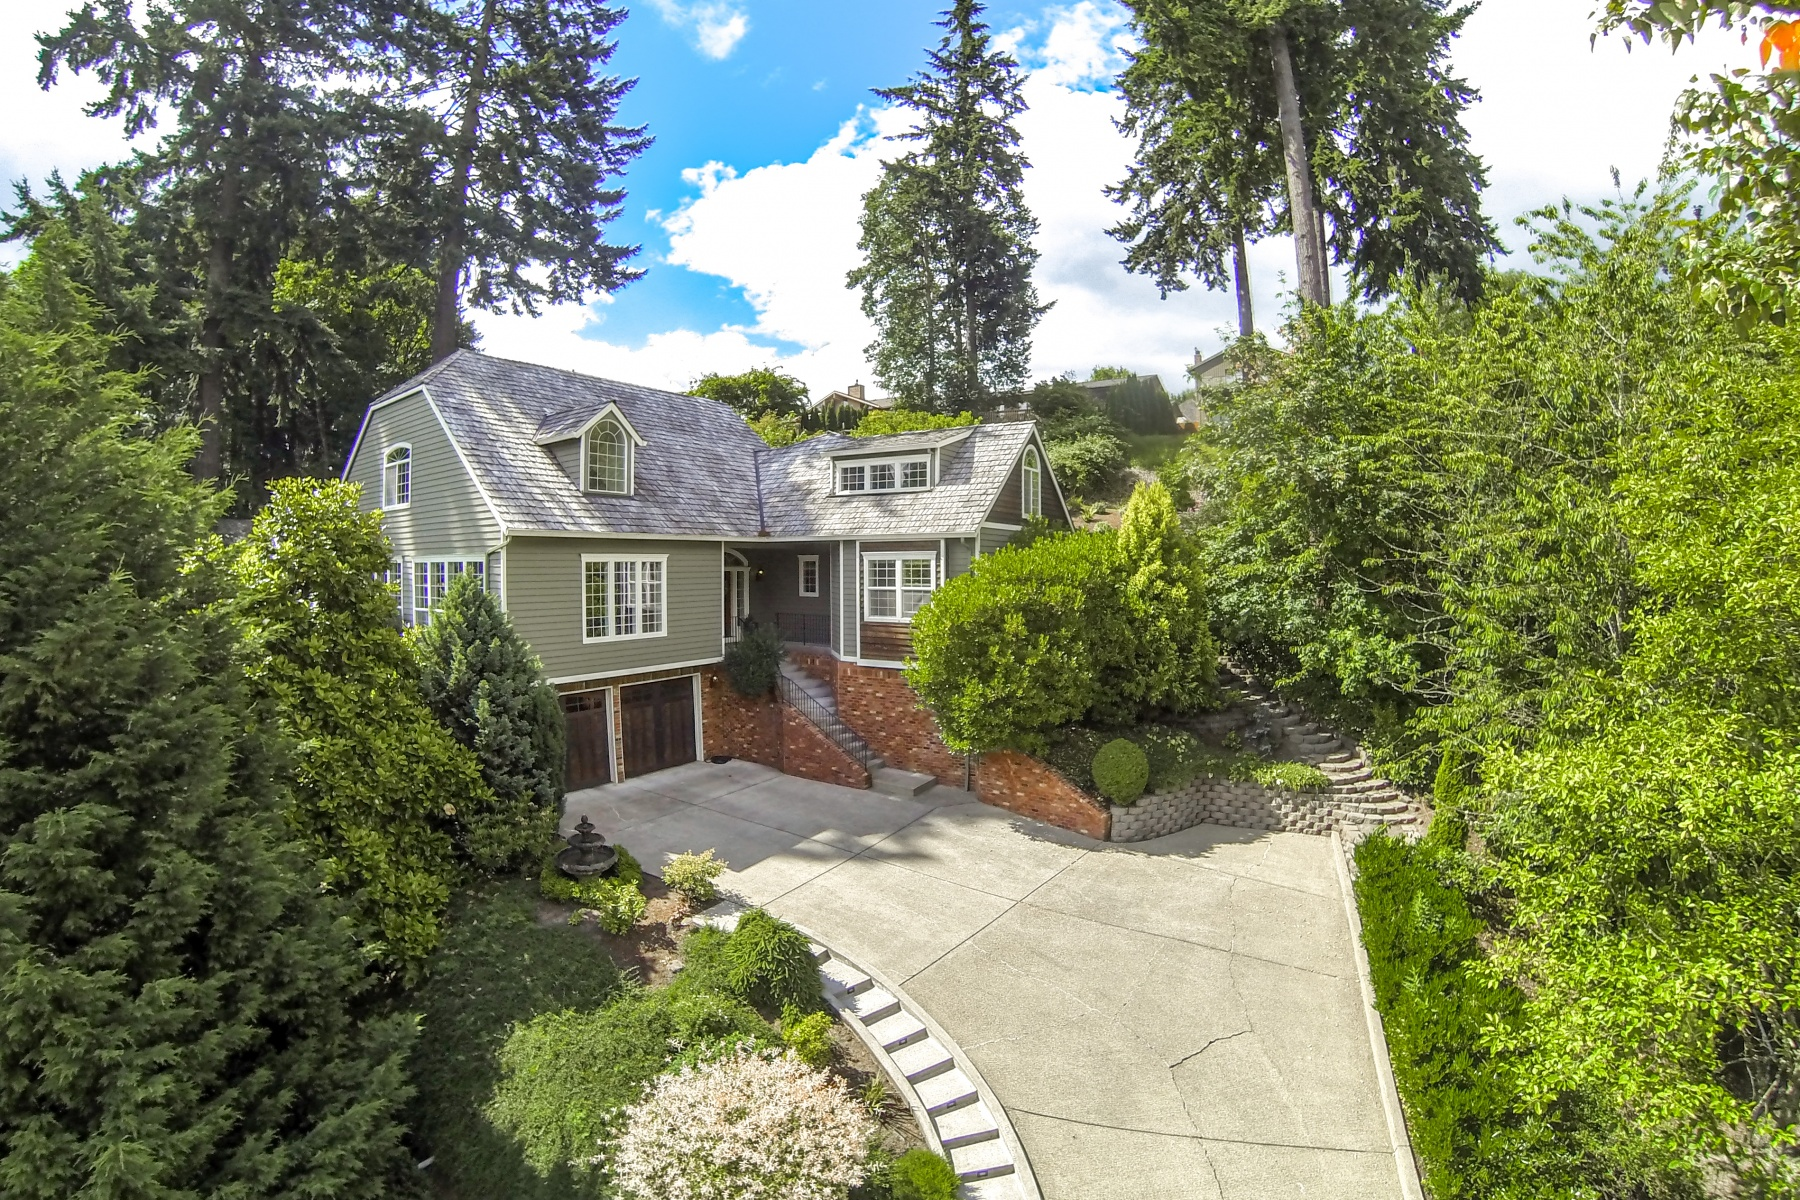 Single Family Home for Sale at Park-Like Tranquil Setting in West Linn 6889 APOLLO Rd West Linn, Oregon 97068 United States